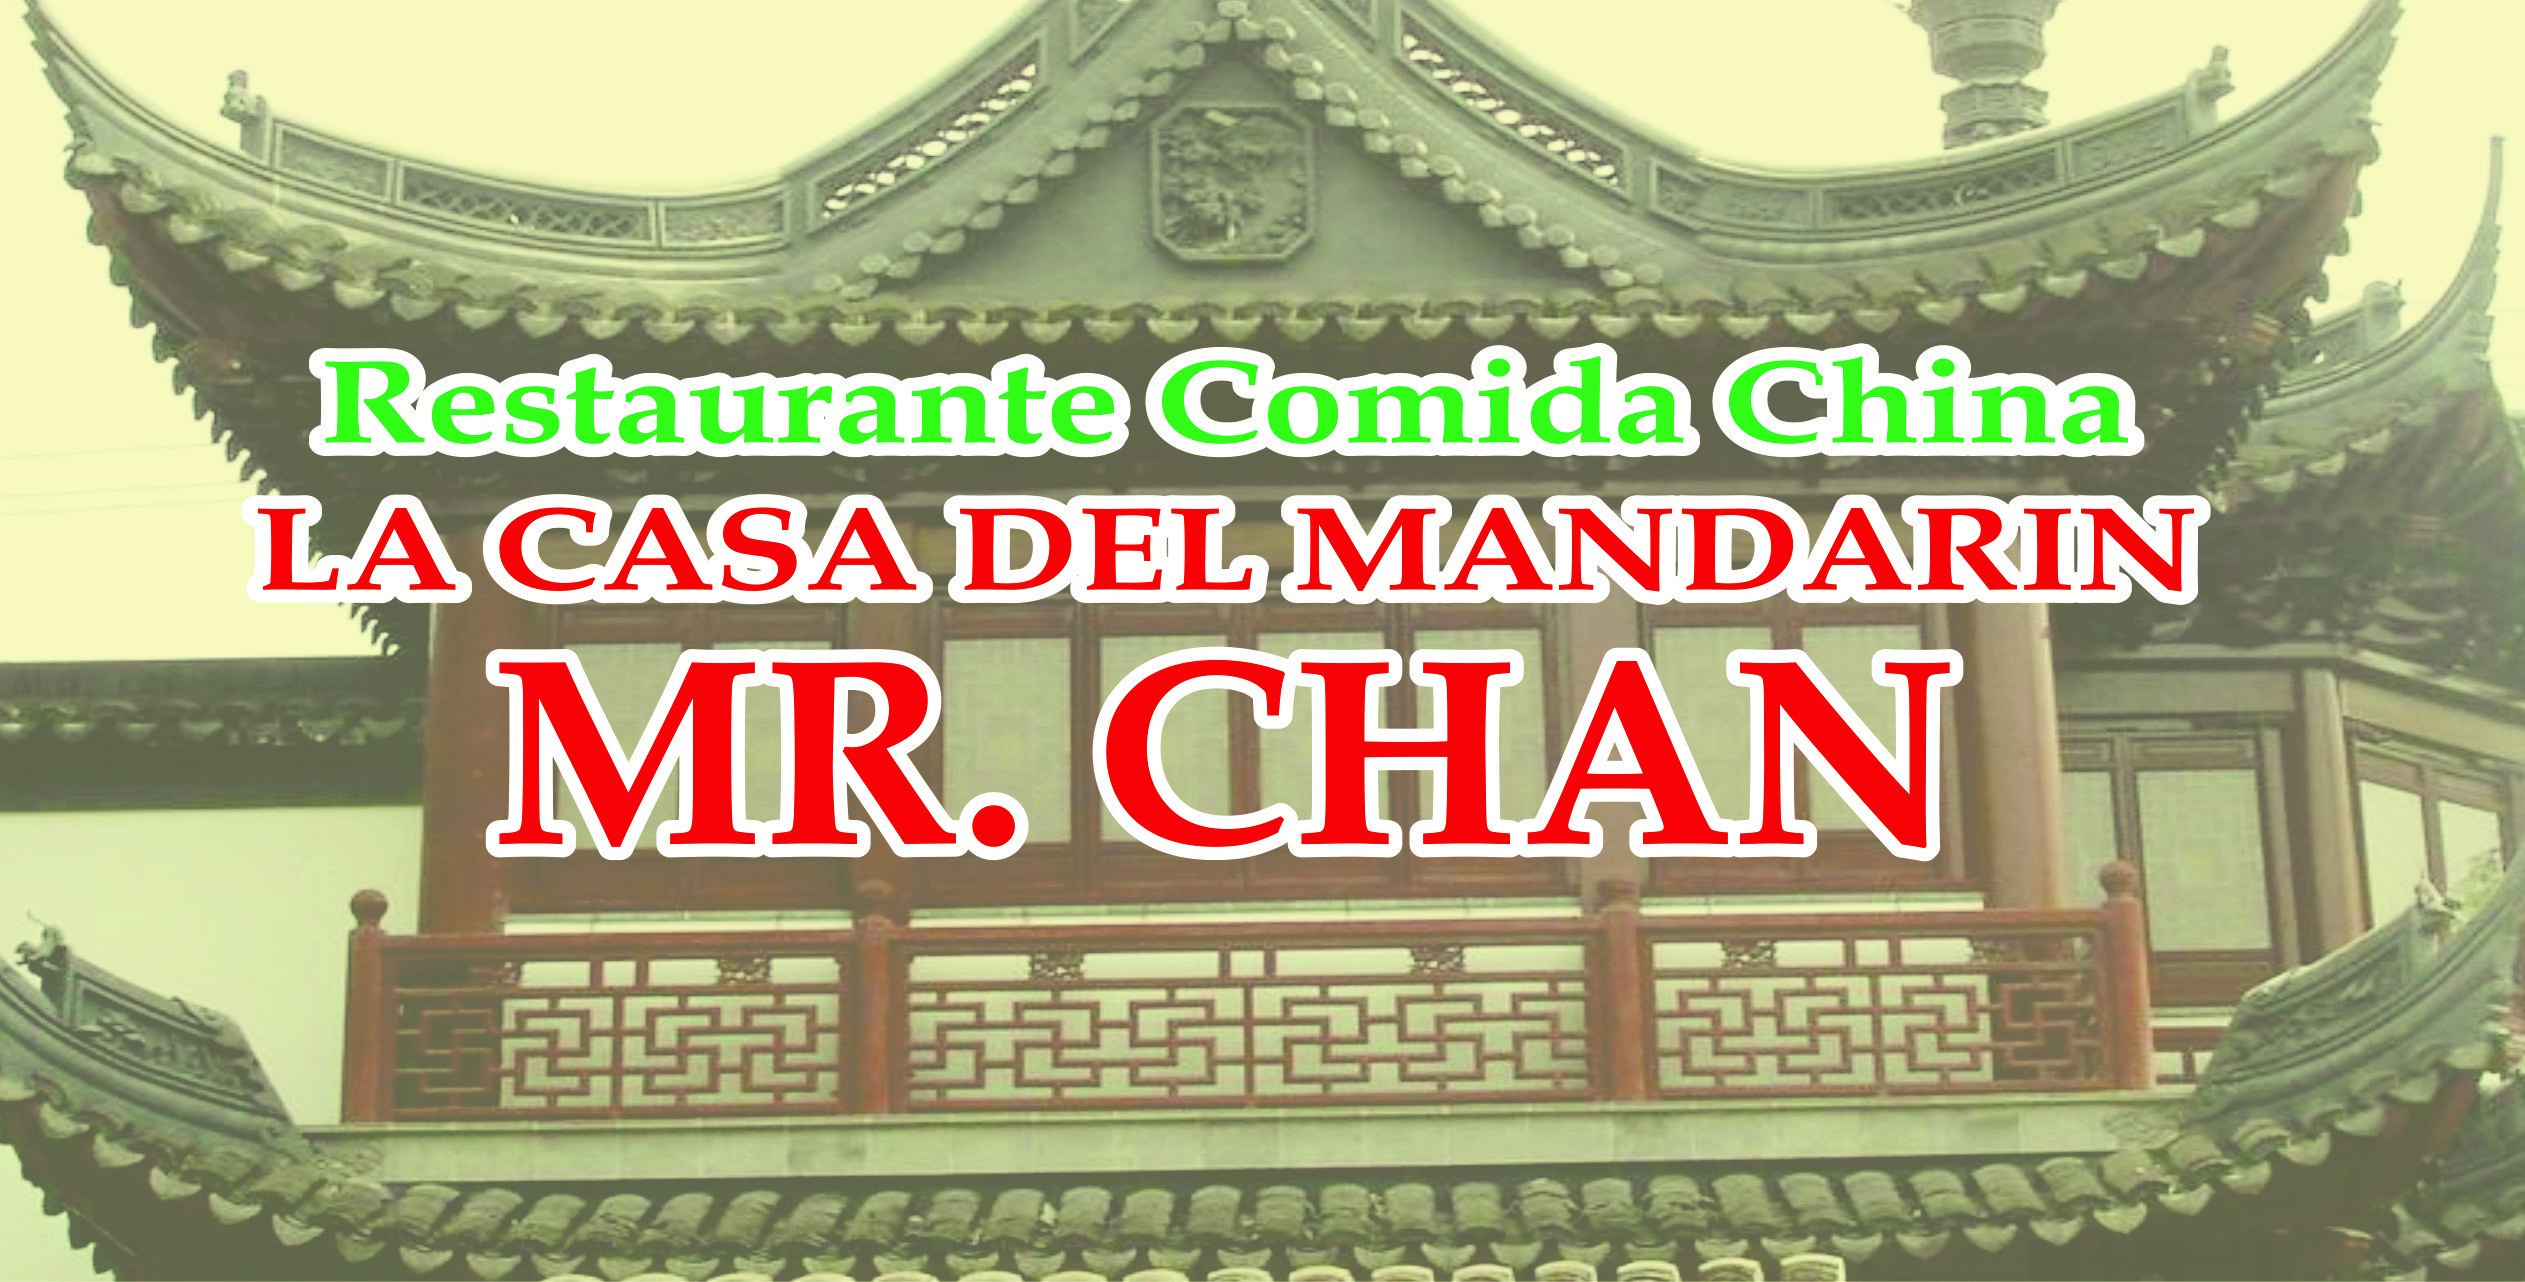 Restaurante Comida China Mr. Chan